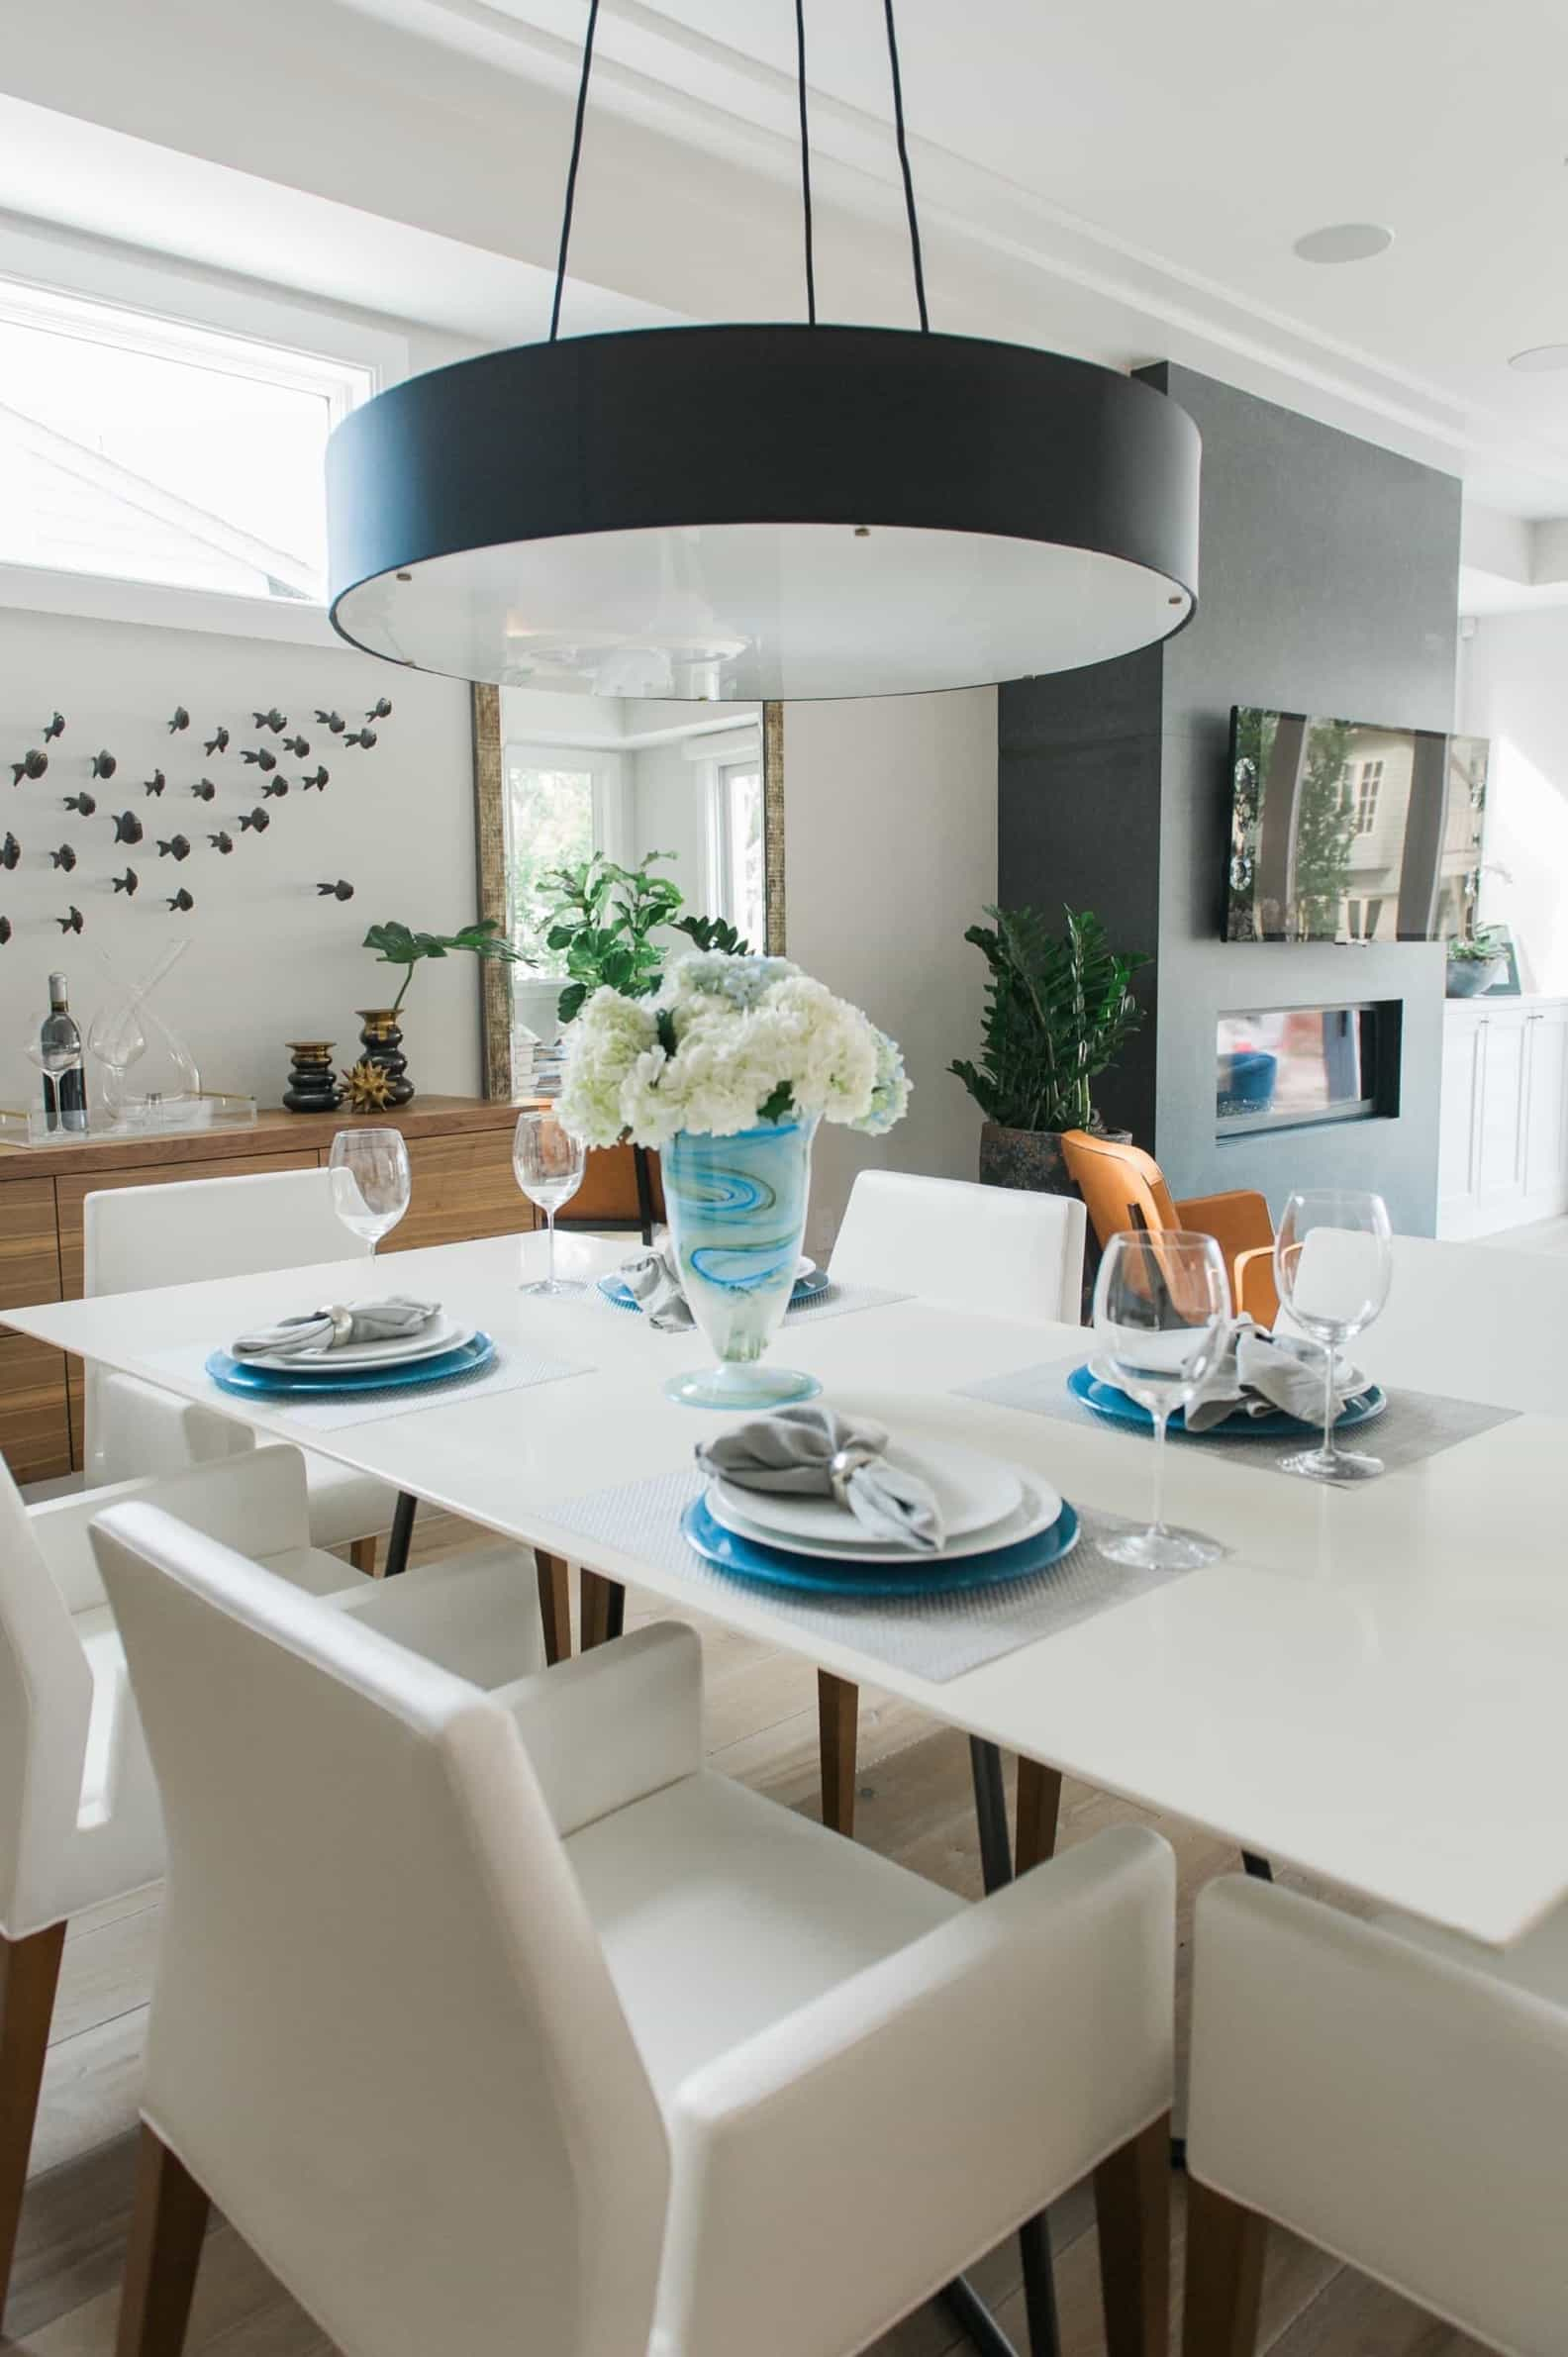 Featured Image of Black And White Contemporary Coastal Dining Room